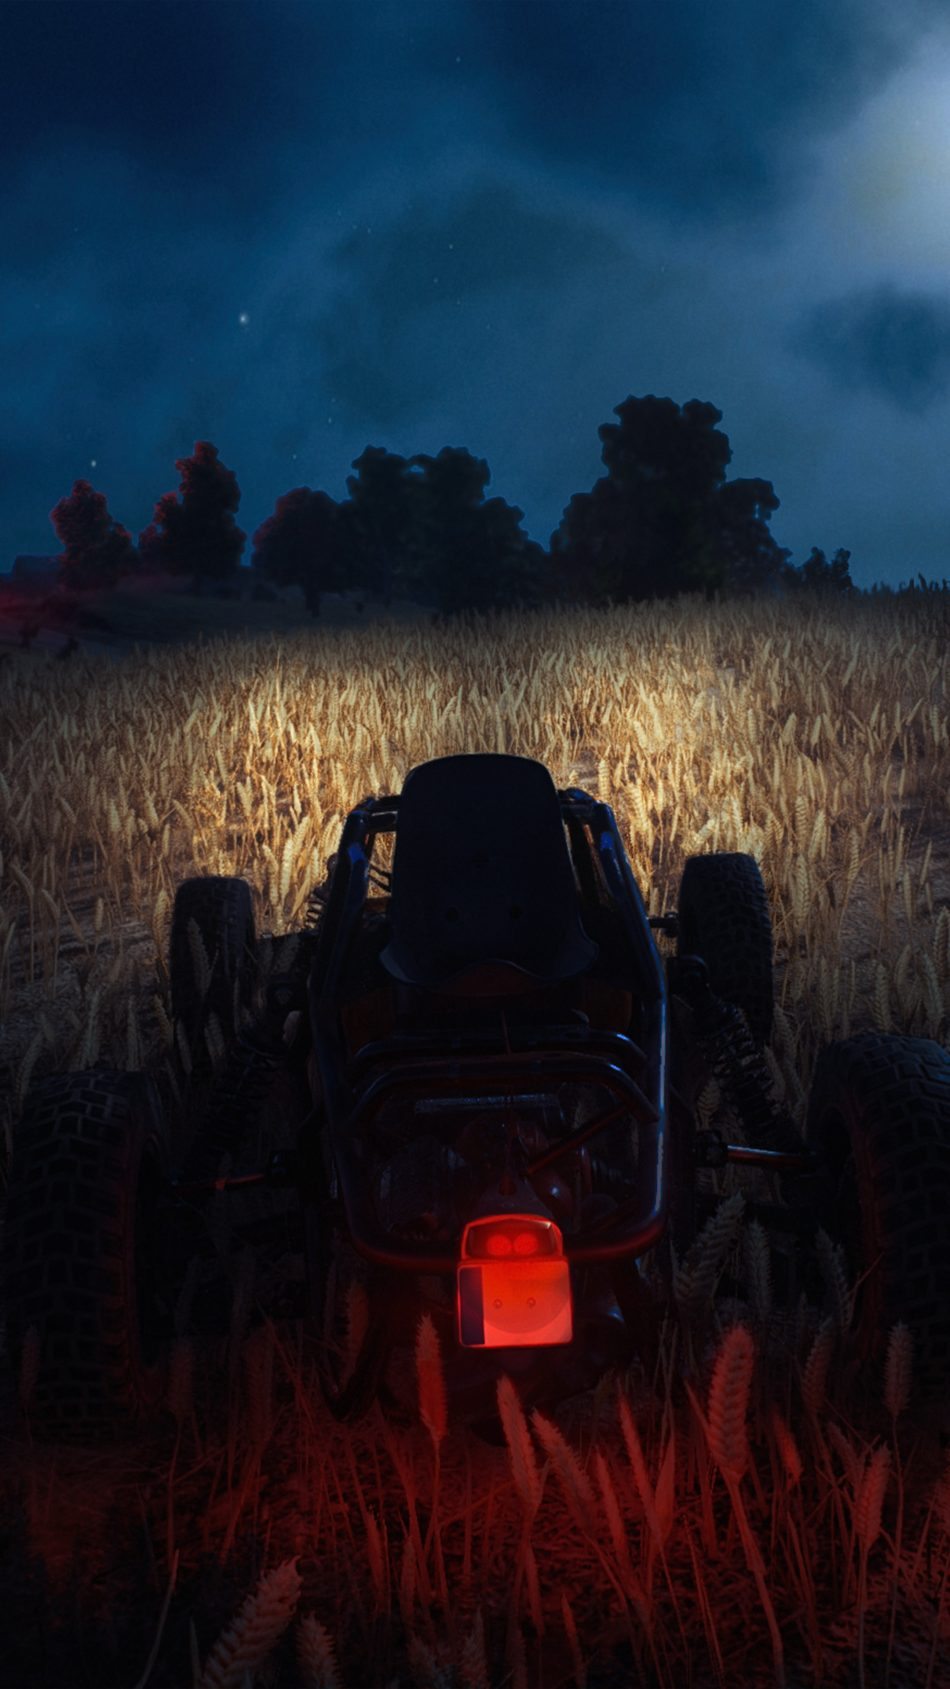 Download Pubg Buggy Night Mode Driving Free Pure 4k Ultra Hd